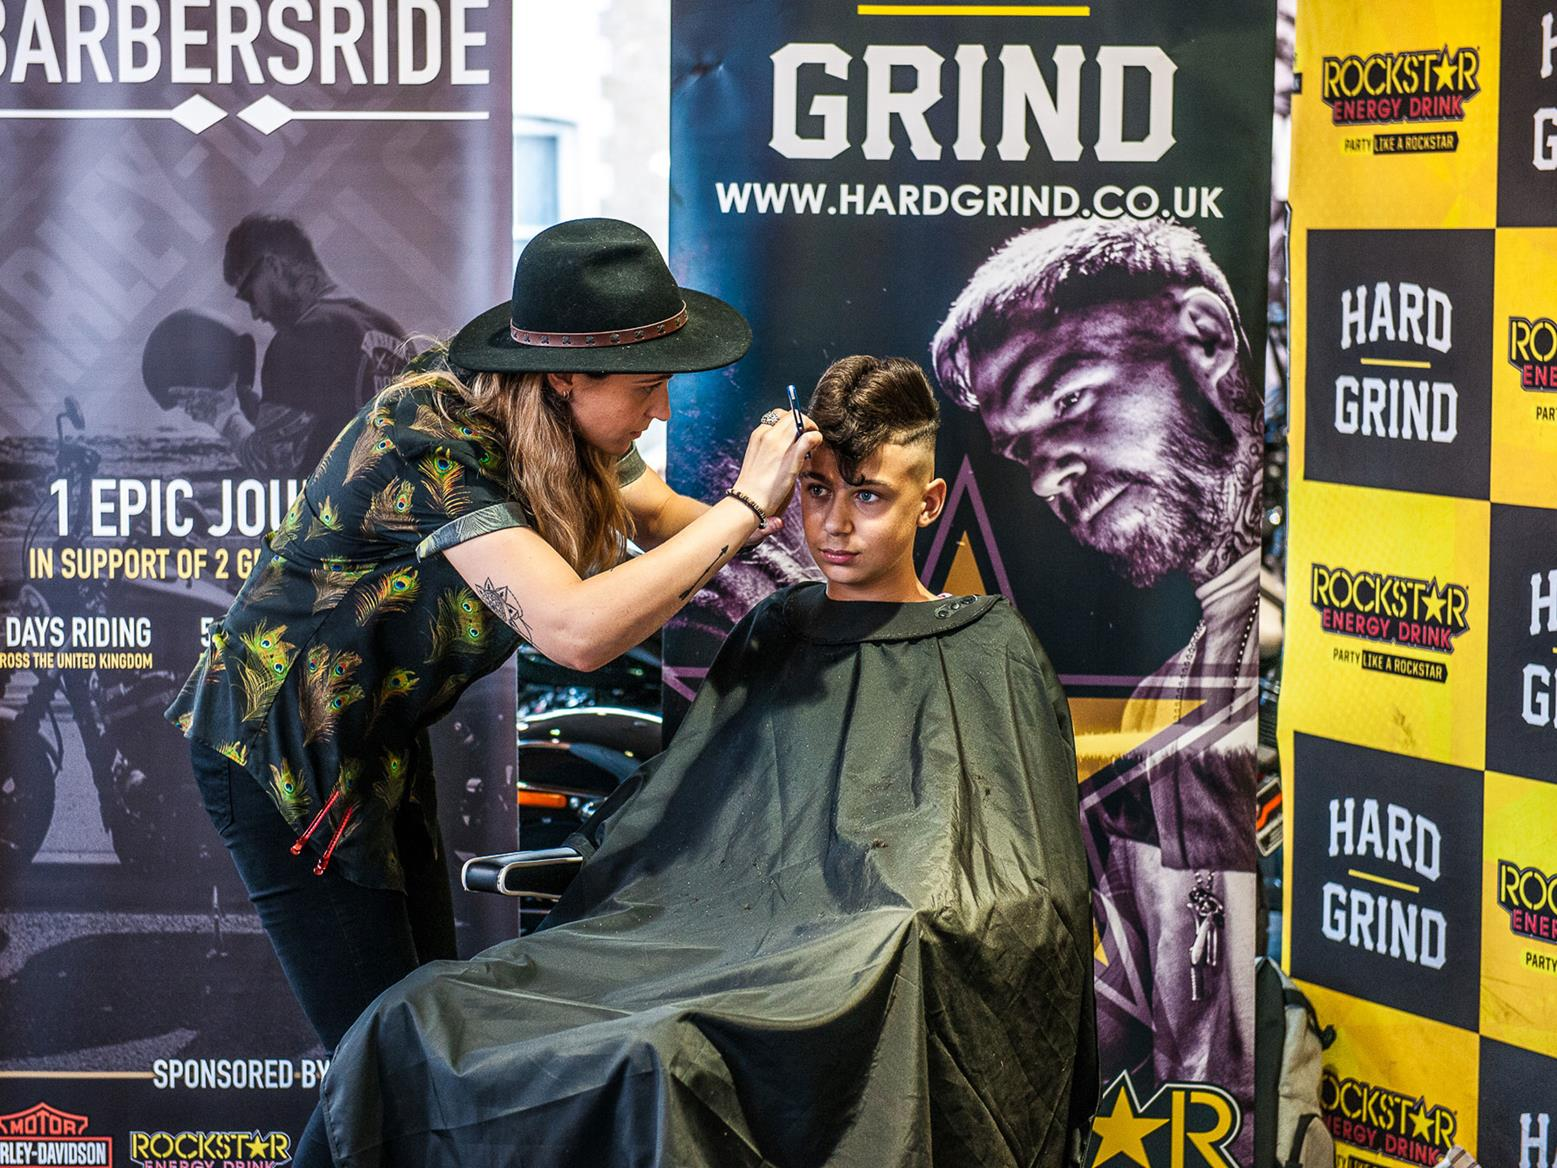 A barber trimming a haircut at BarbersRide